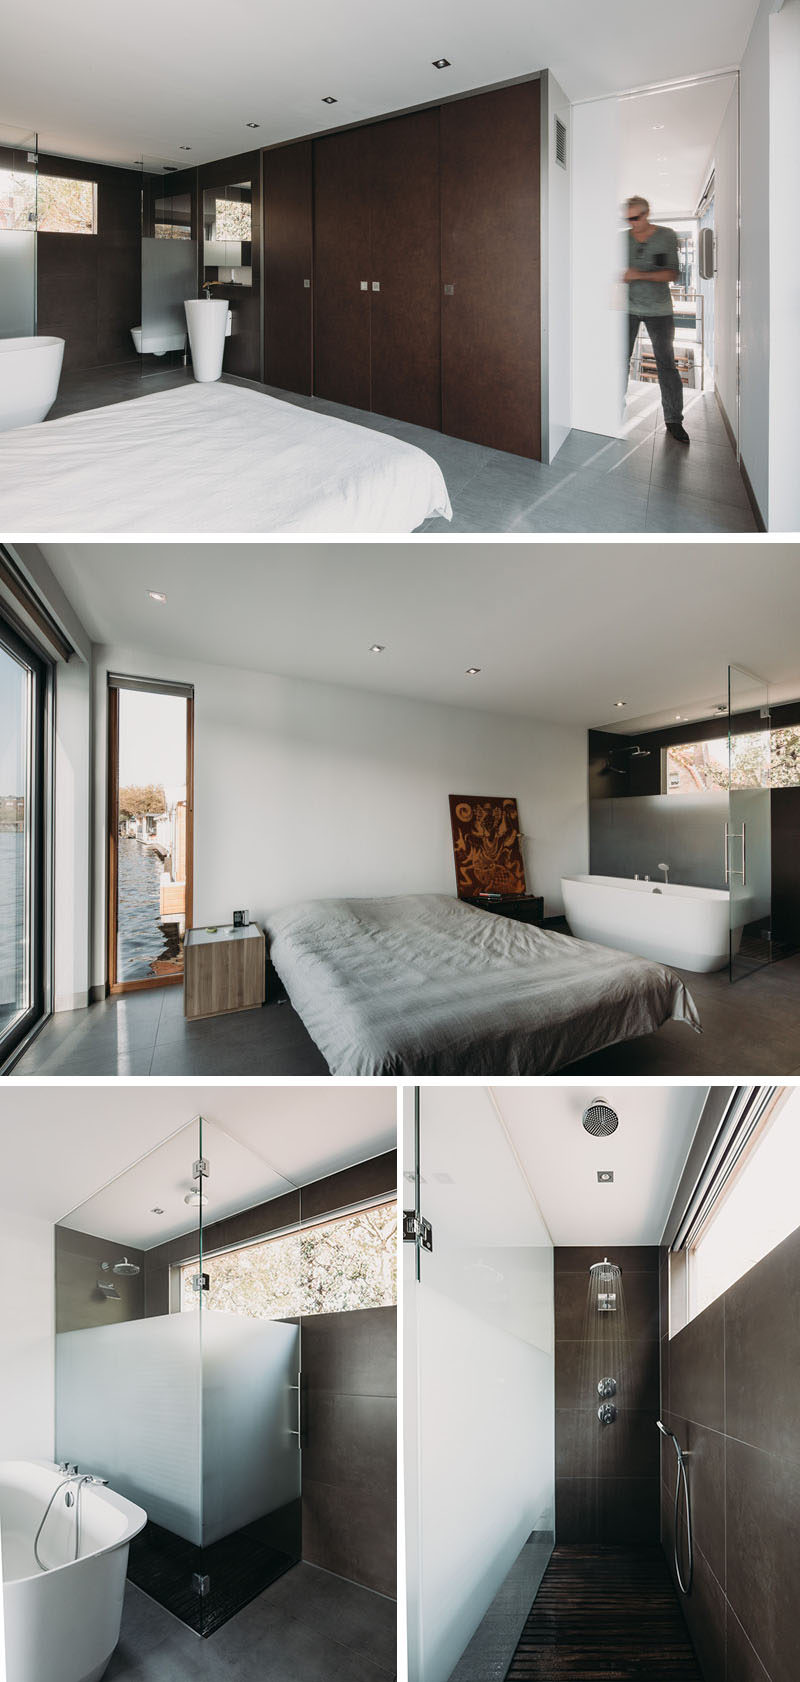 This simple and modern bedroom and bathroom share the same space with a partially frosted glass wall separating the shower and toilet from the rest of the room. #Bedroom #Bathroom